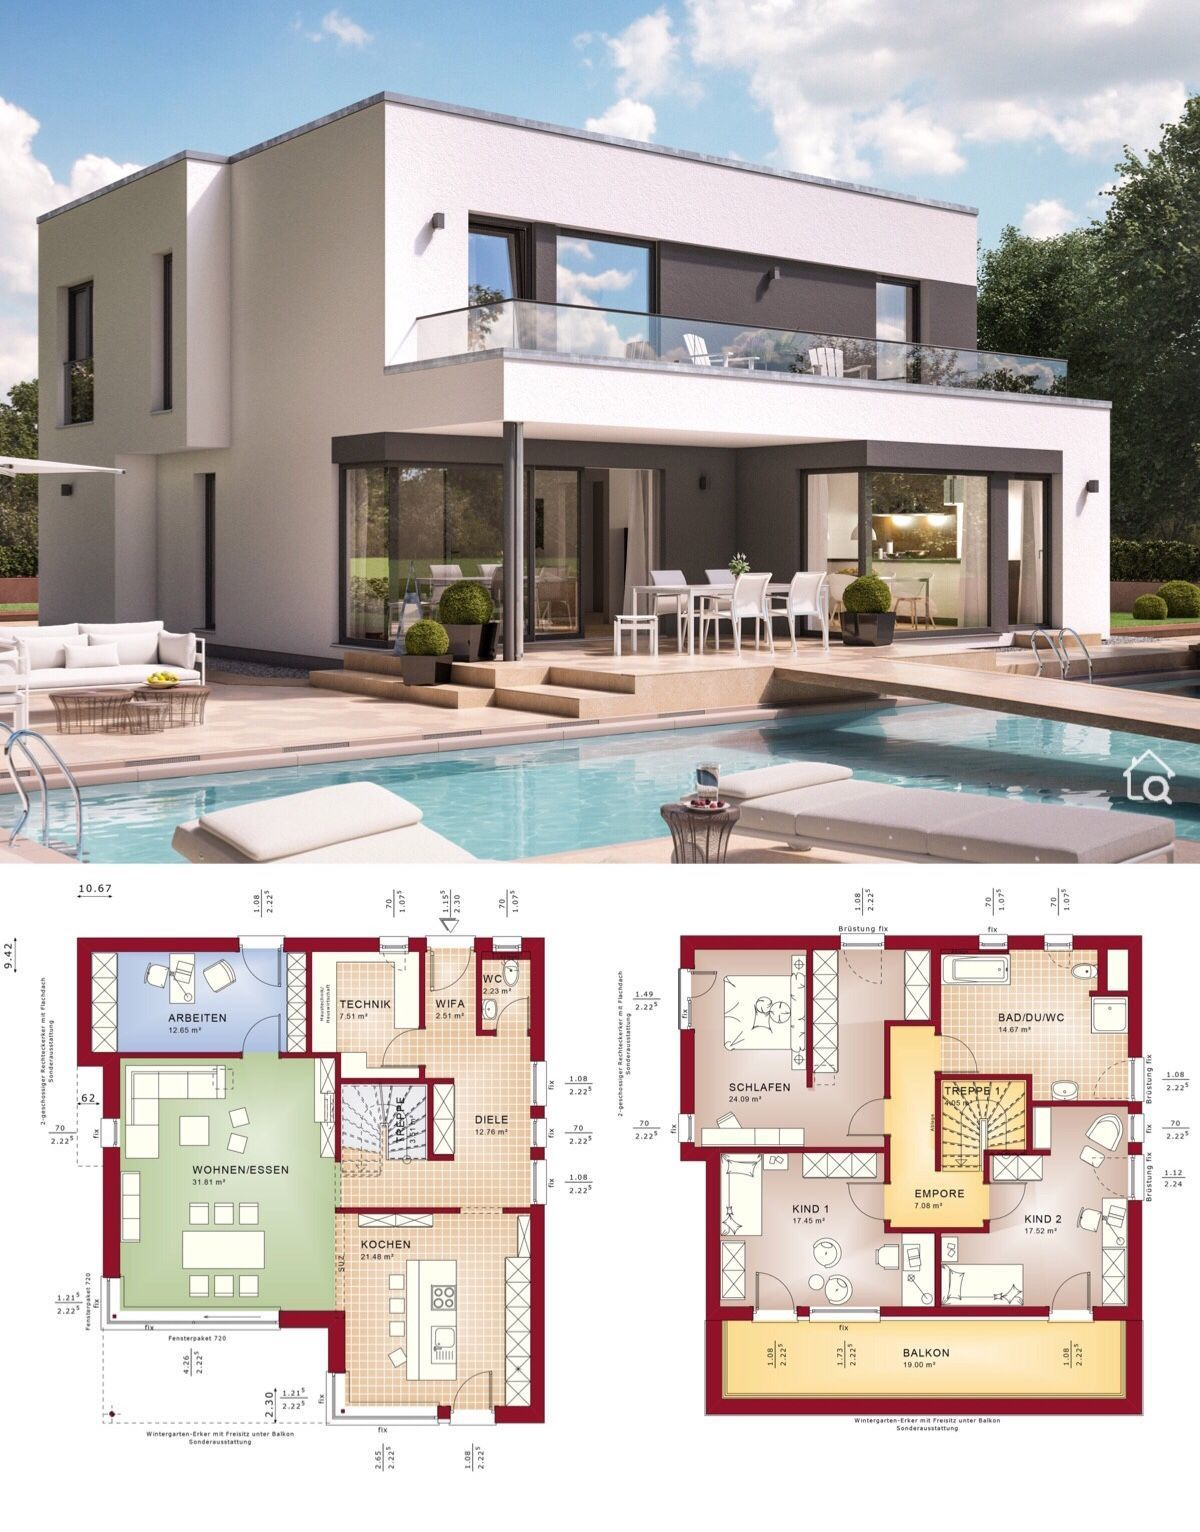 Modernarchitecture Fertighaus Fantastic 163 V8 Im Bauhausstil Bien Zenker Hausbaudirekt In 2020 Modern Villa Design House Architecture Design Prefabricated Houses